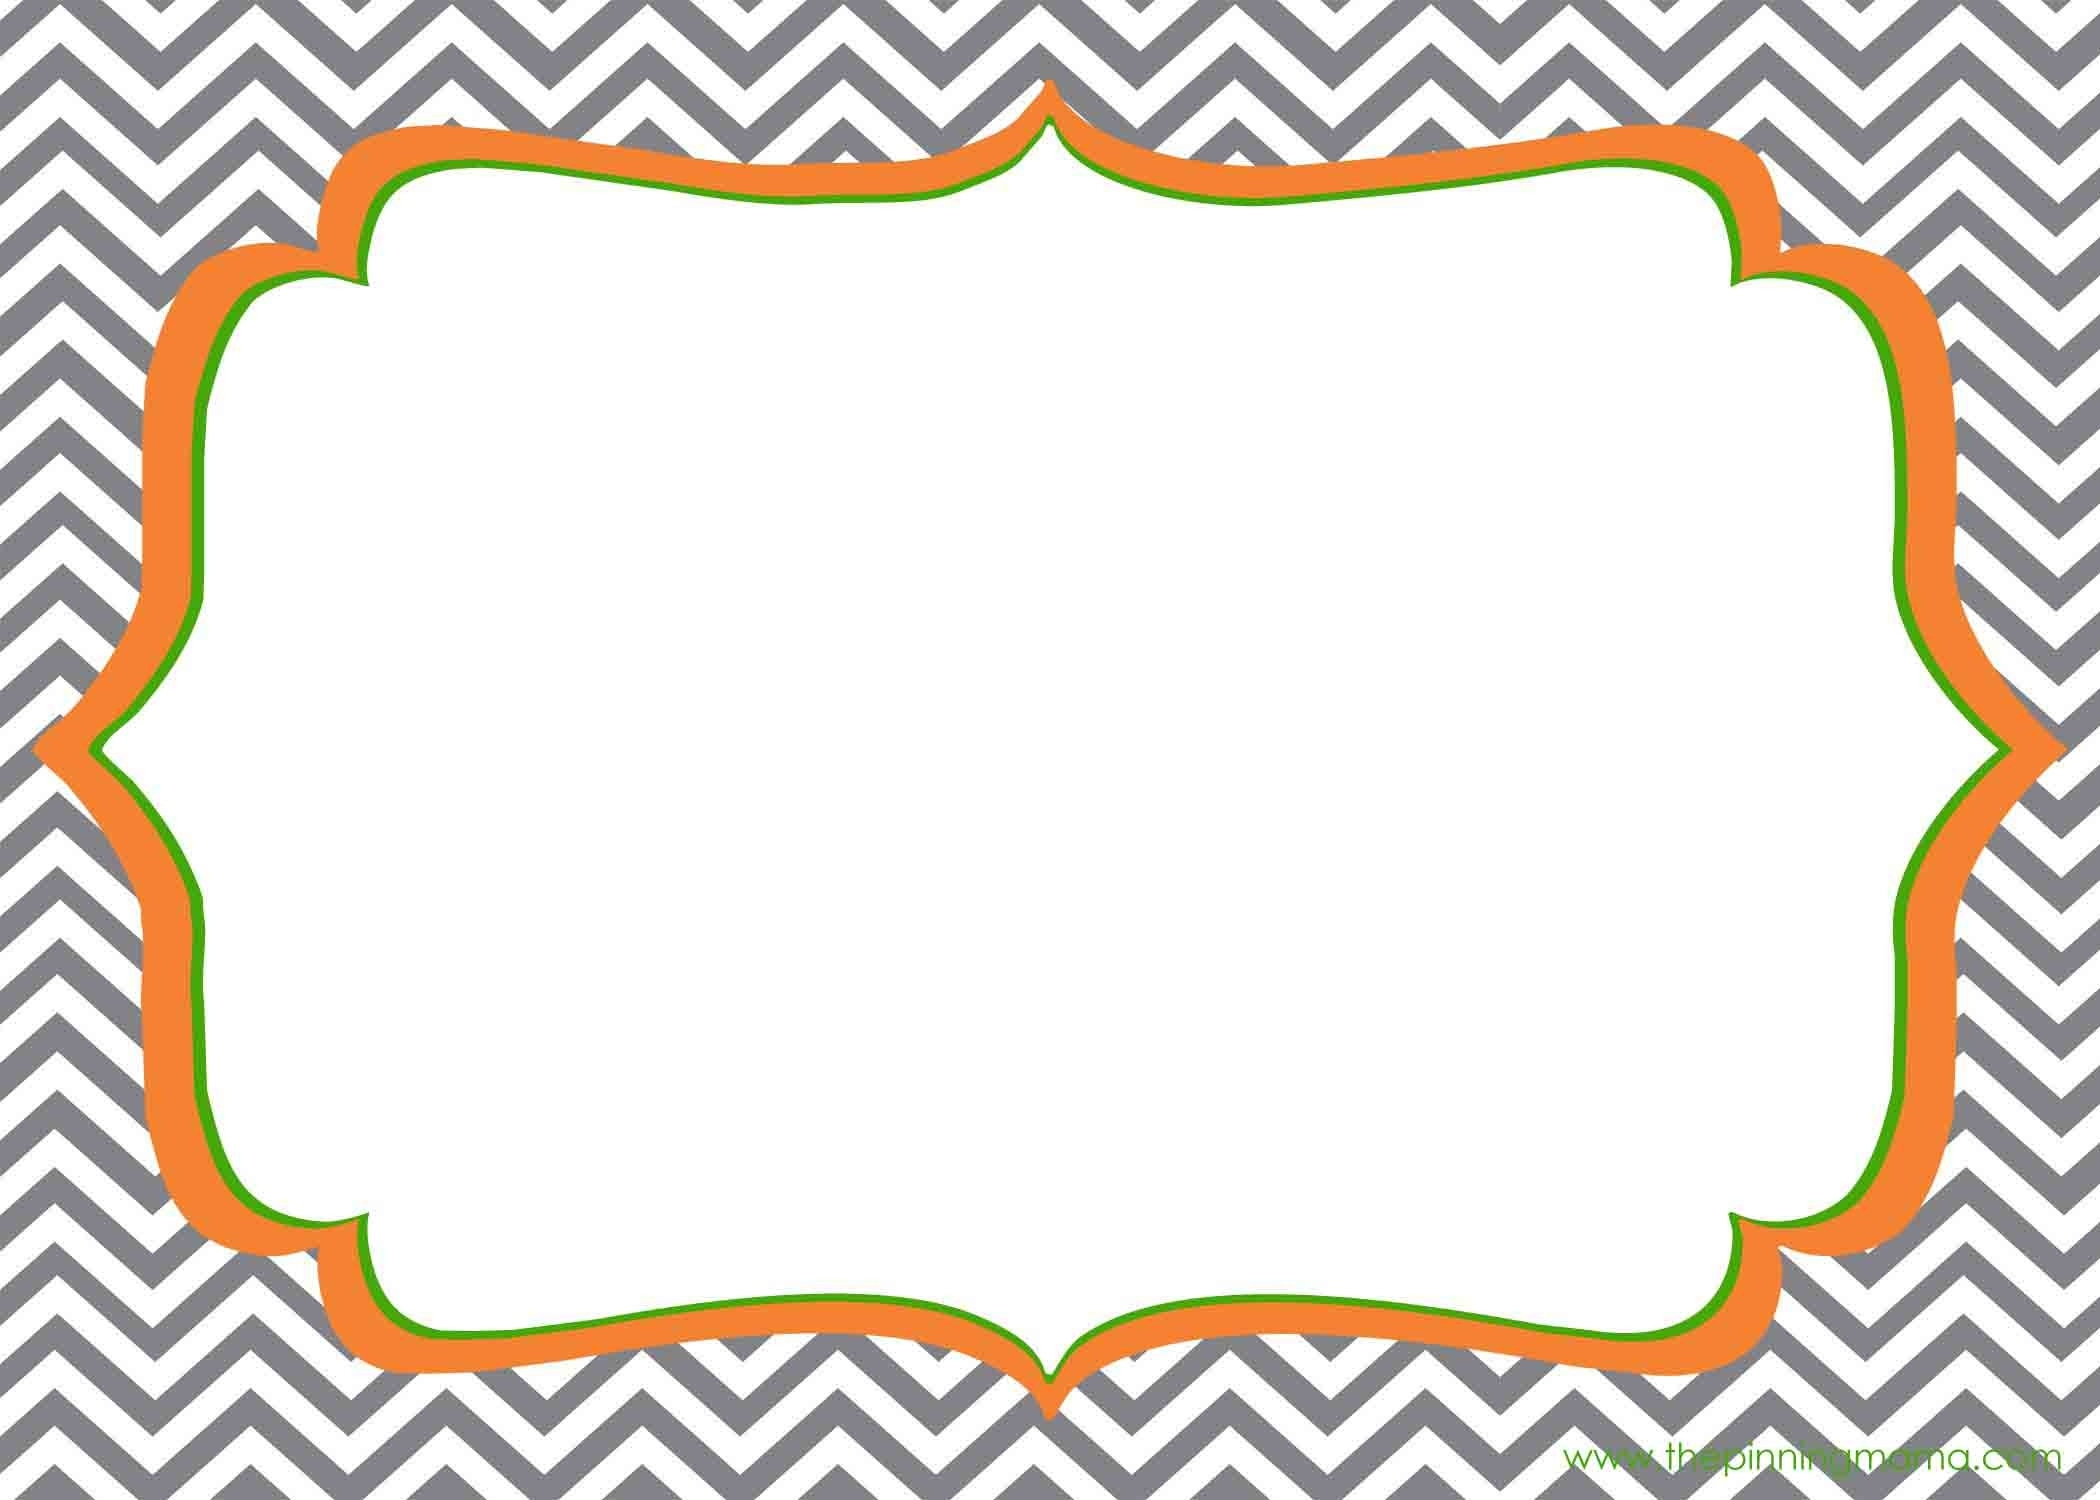 003 Template Ideas Free Printable Photo Cards Templates Baby - Free Printable Card Templates